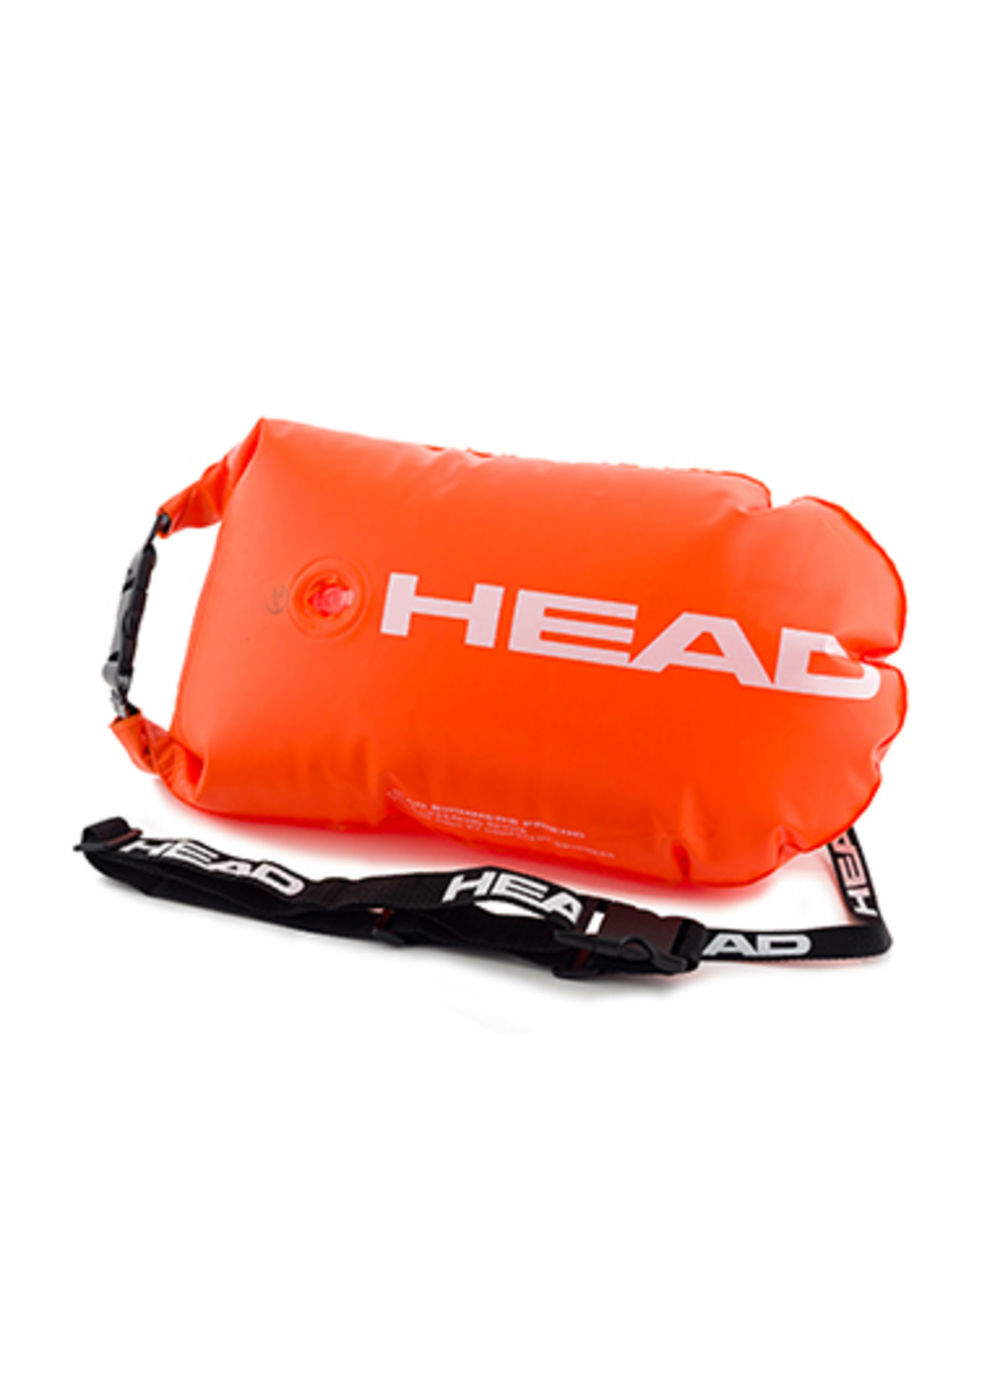 Head Safety Buoy